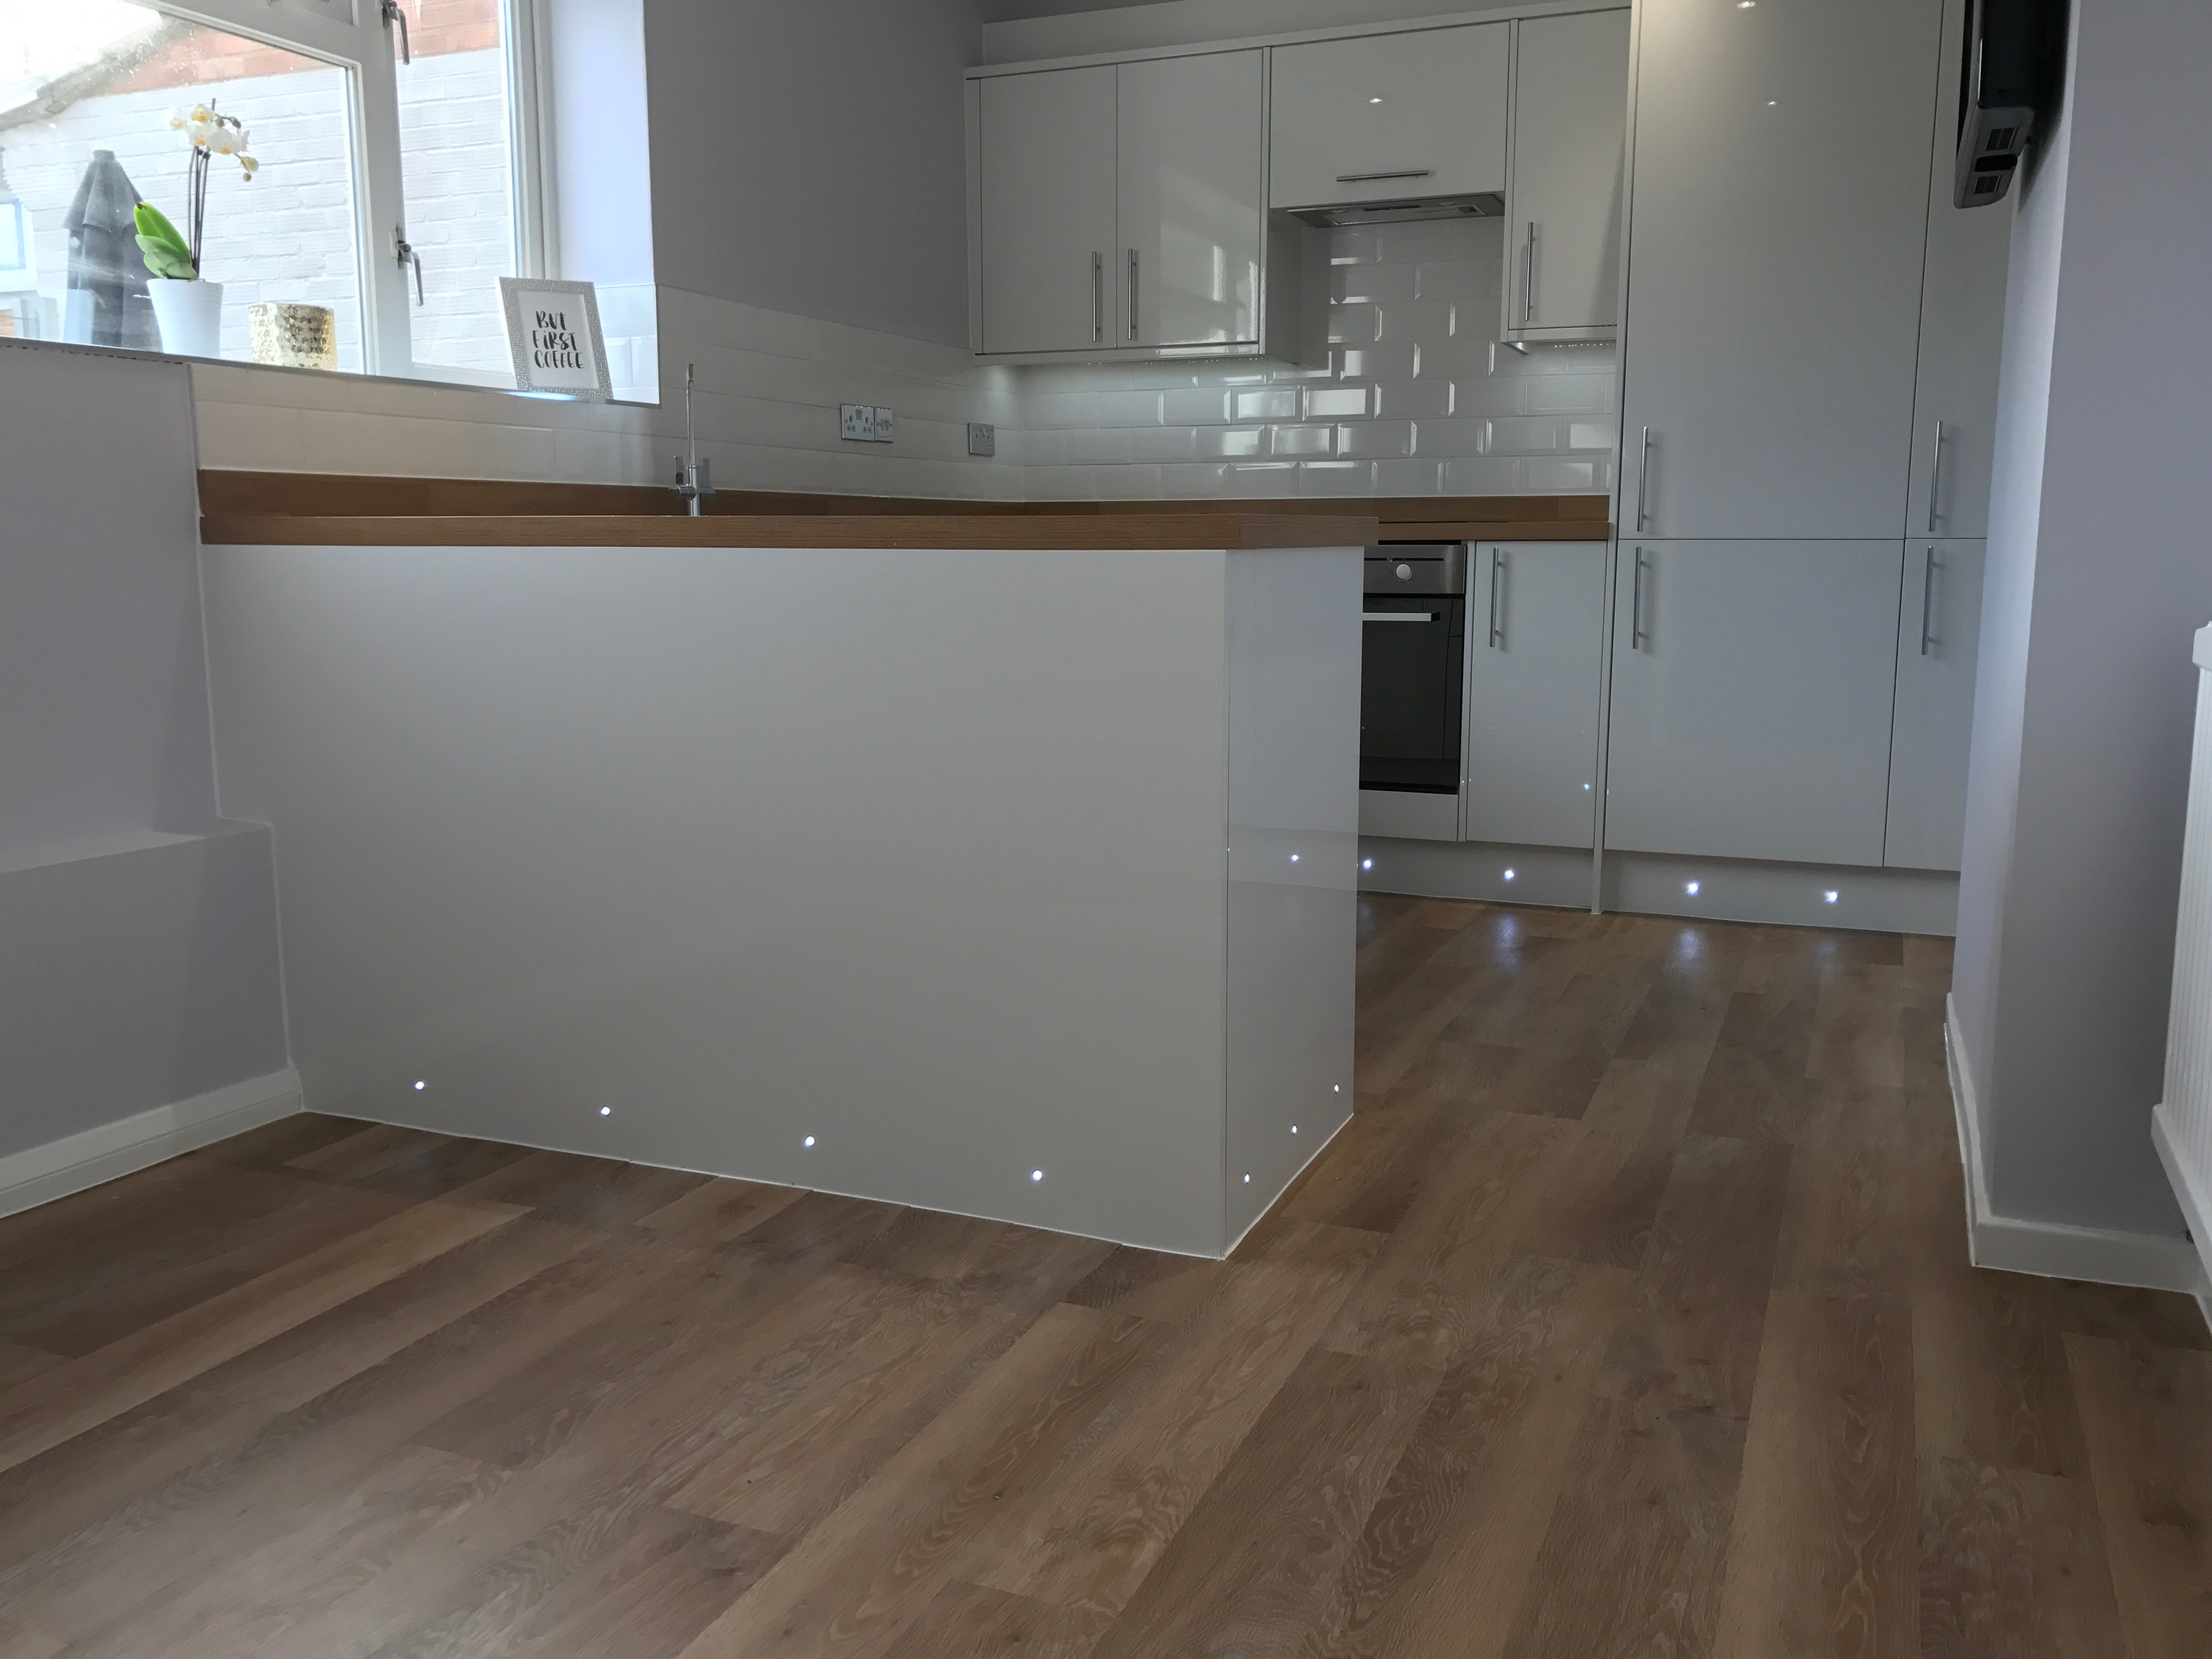 Kitchen Project Bedfordshire - TNM Property Services0672